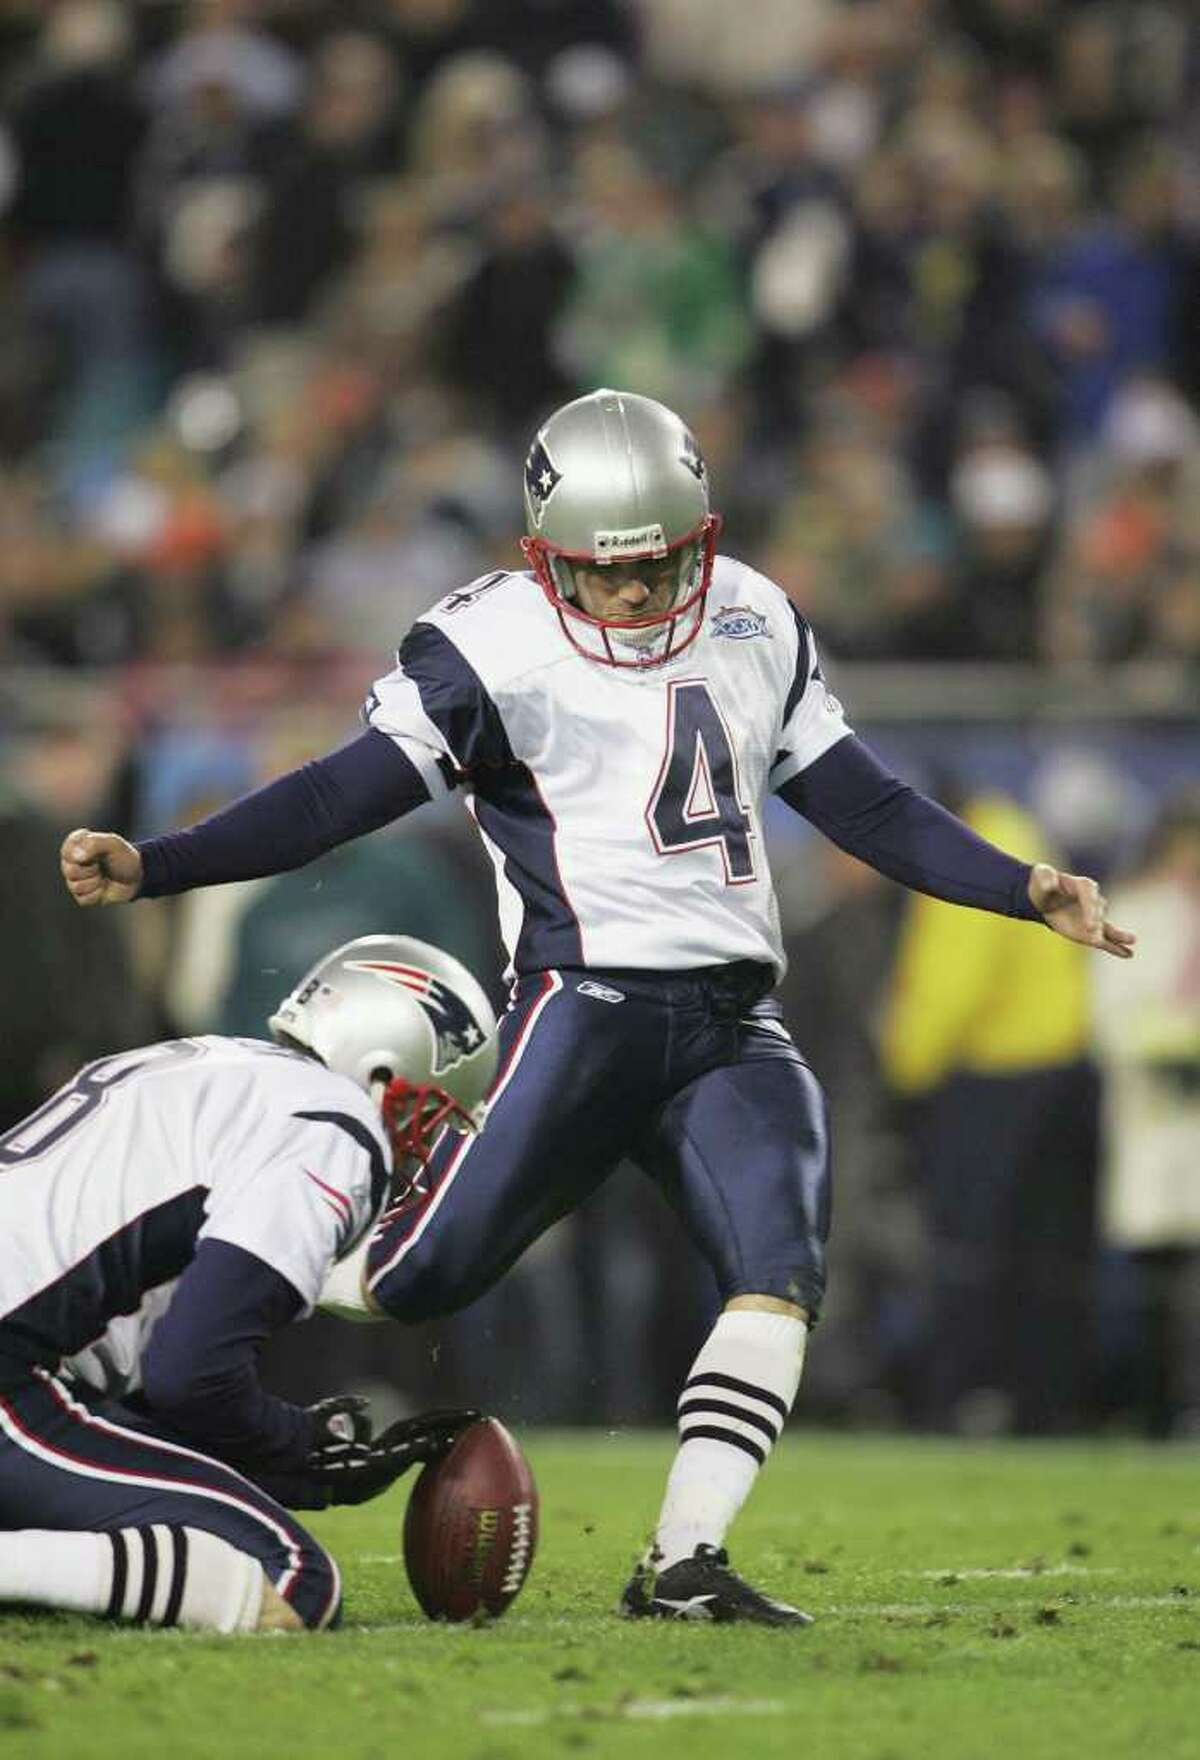 14. Super Bowl XXXIX New England 24, Philadelphia 21: An Adam Vinatieri field goal provided the margin of victory - for the third time in a Super Bowl in his career - but a late Donovan McNabb touchdown pass to Geg Lewis kept things interesting almost to the end.